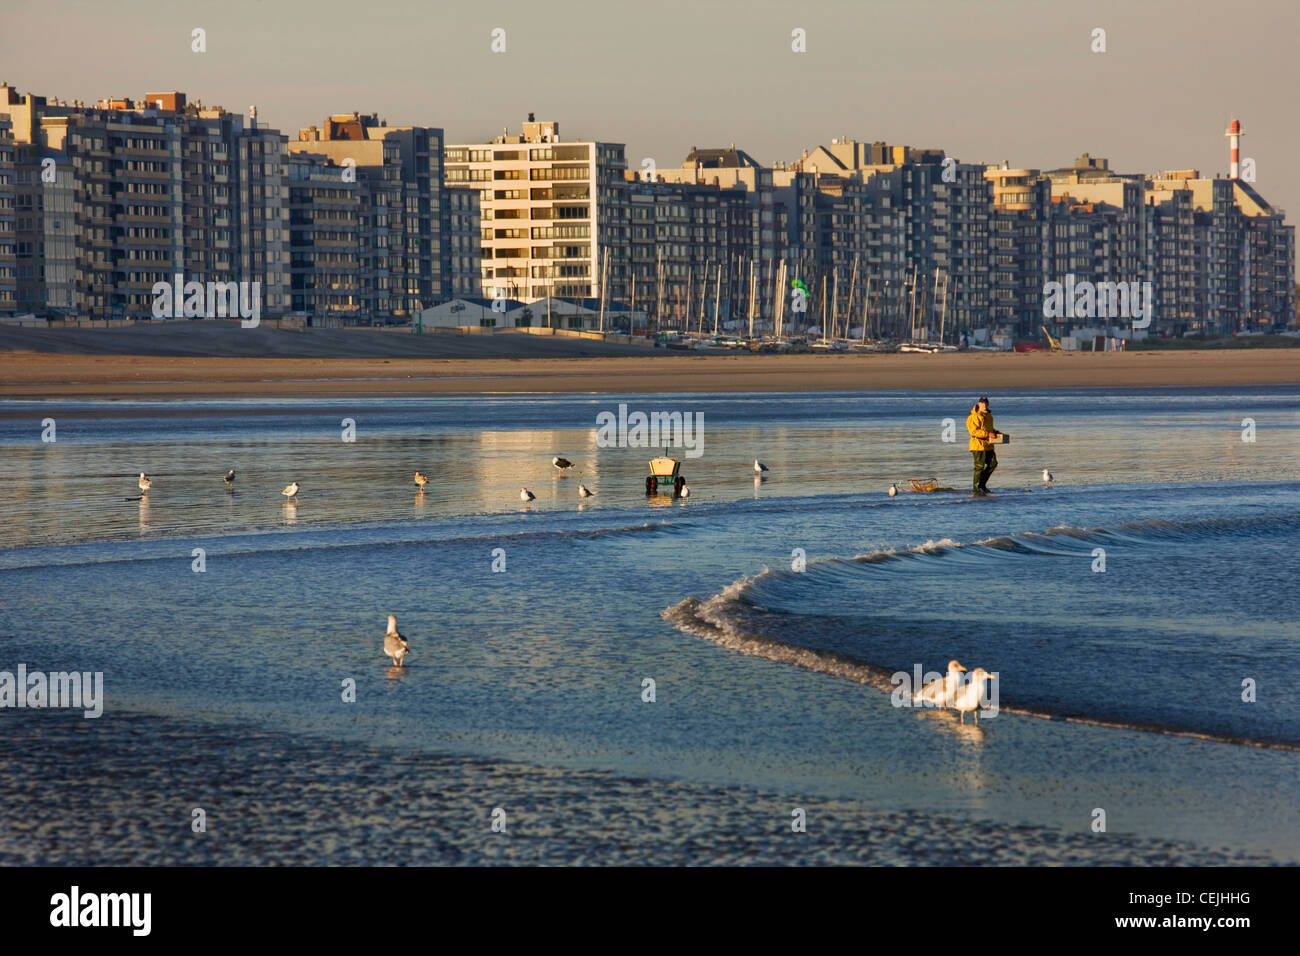 Belgian urban development showing apartments along the North Sea coast at Knokke-Heist, Belgium - Stock Image